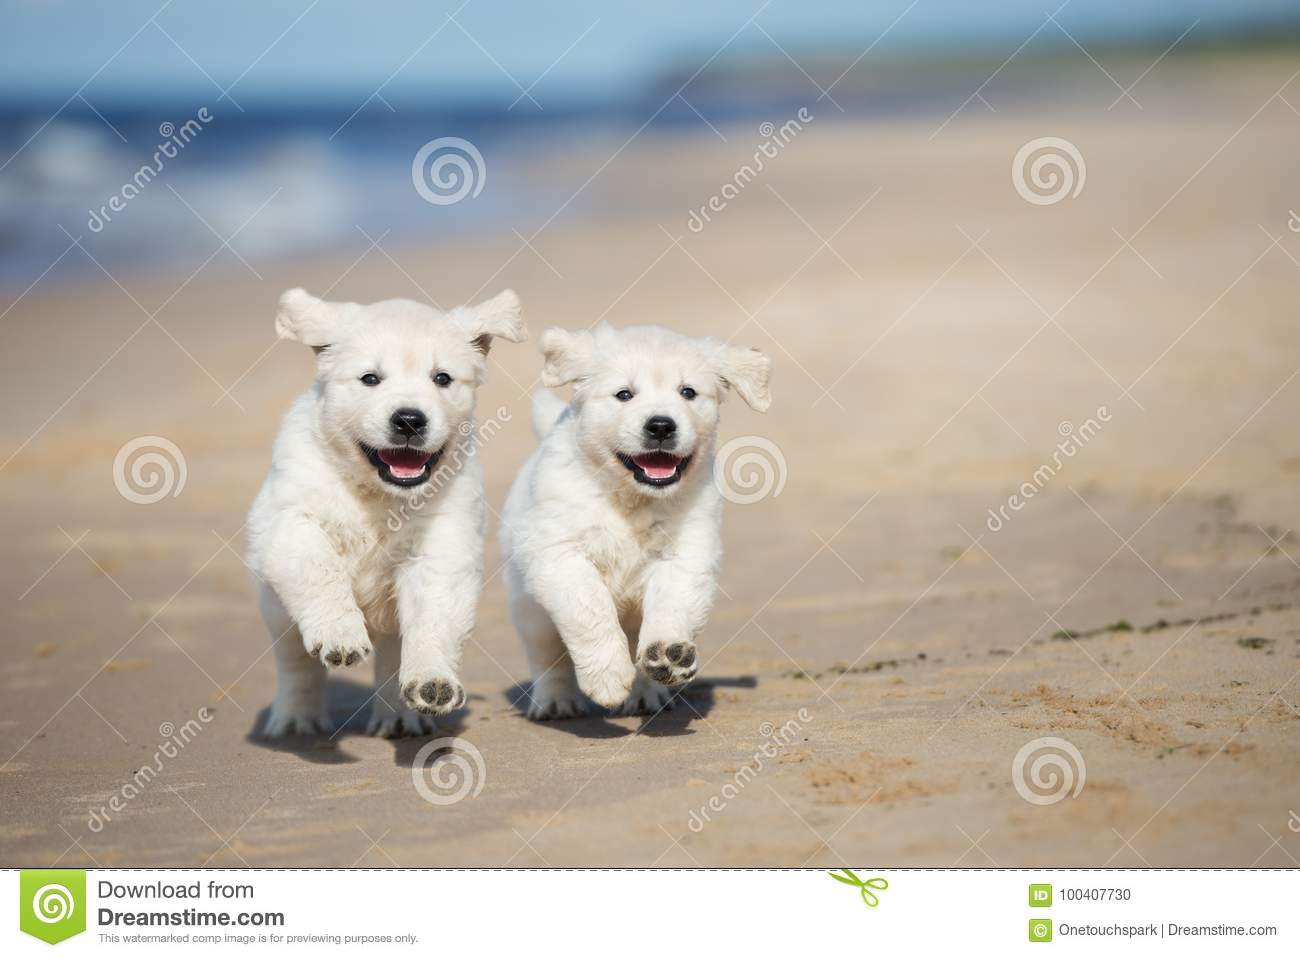 Two Golden Retriever Puppies Running On A Beach Stock Photo Image Of Beach Portrait 100407730